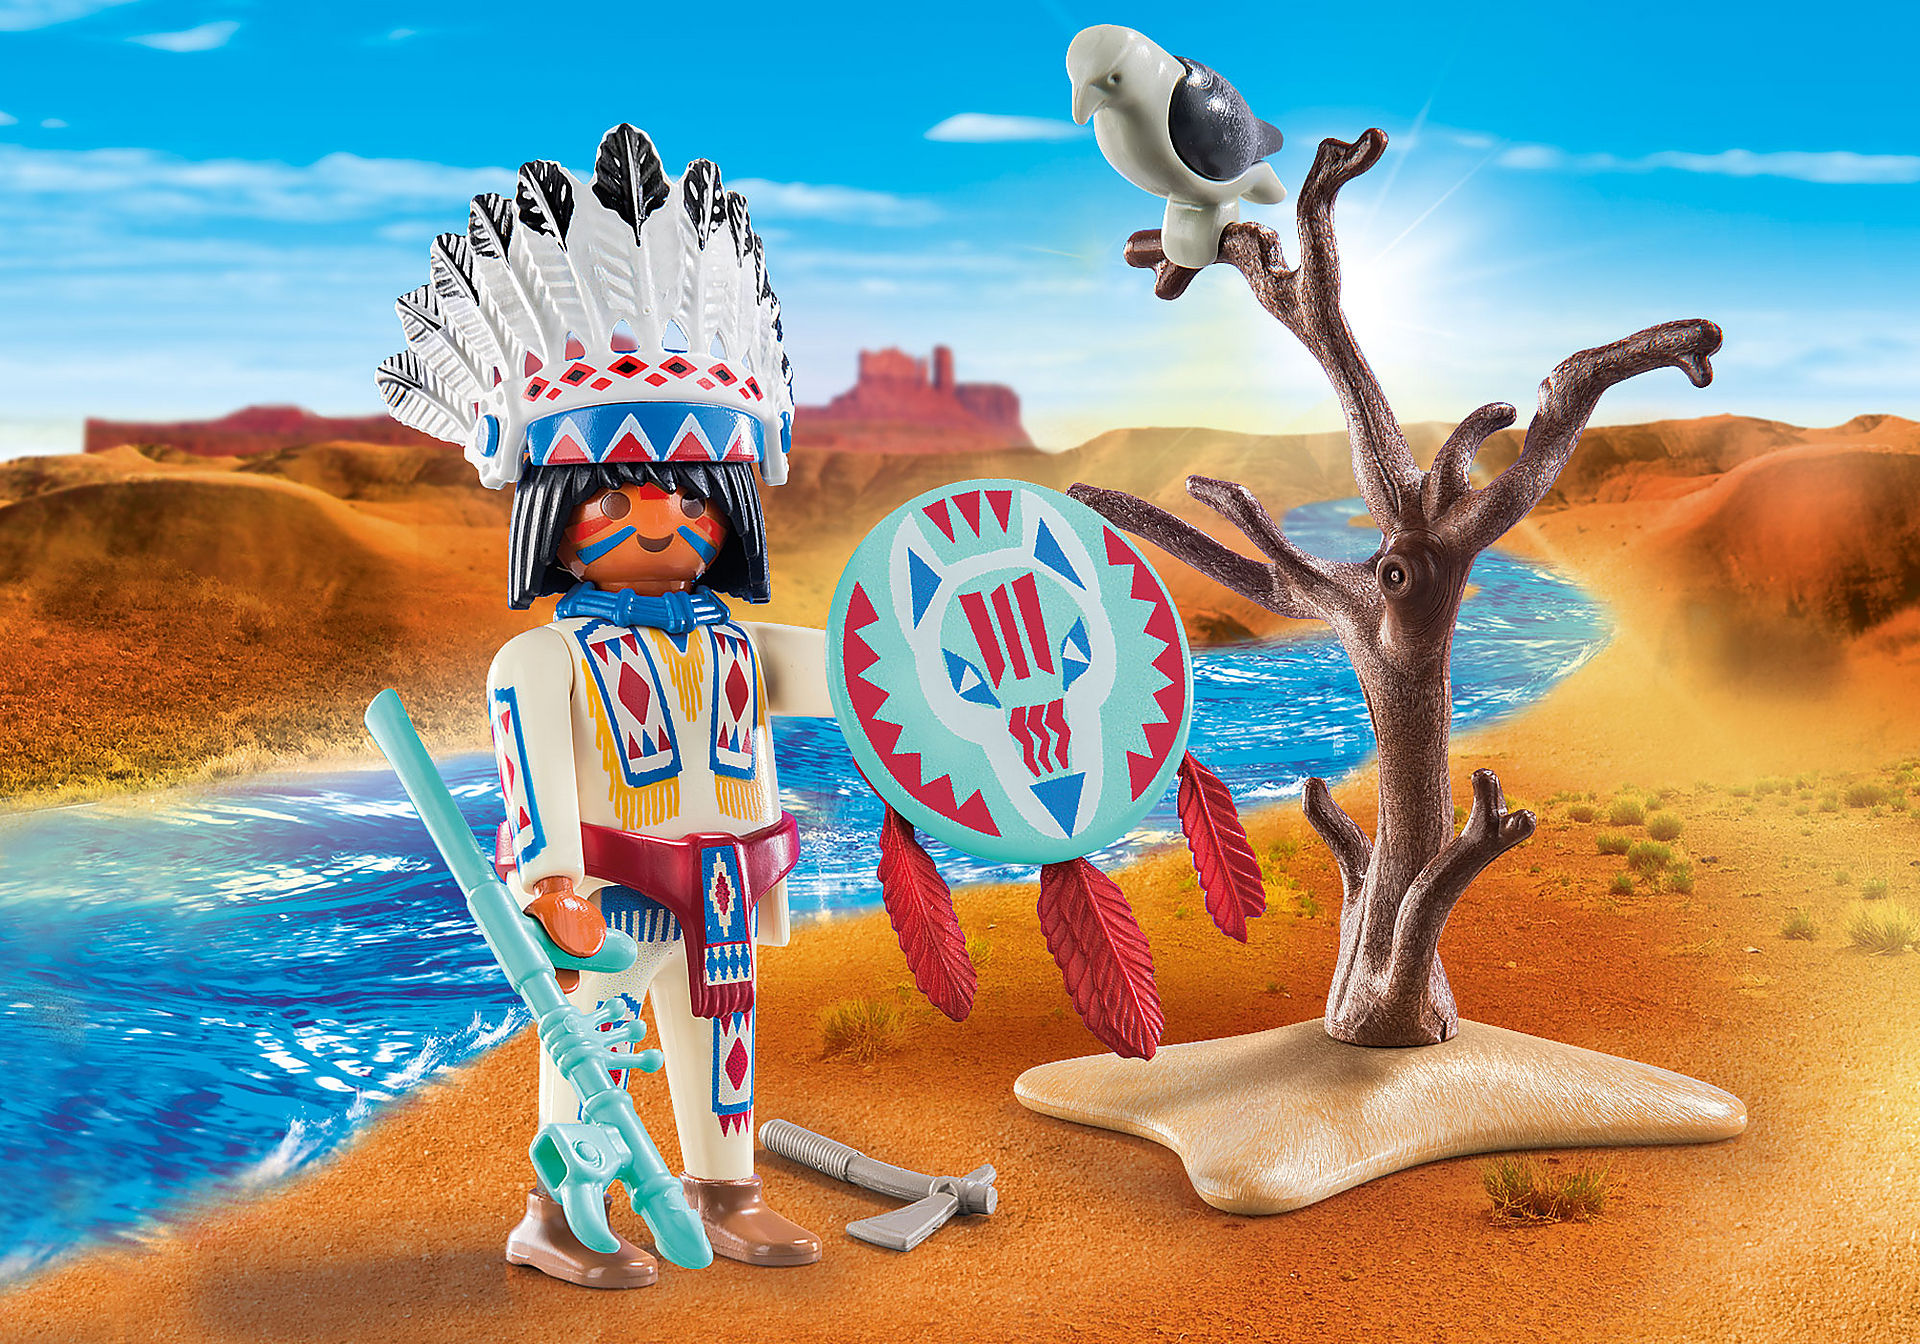 http://media.playmobil.com/i/playmobil/70062_product_detail/Indianerhøvding